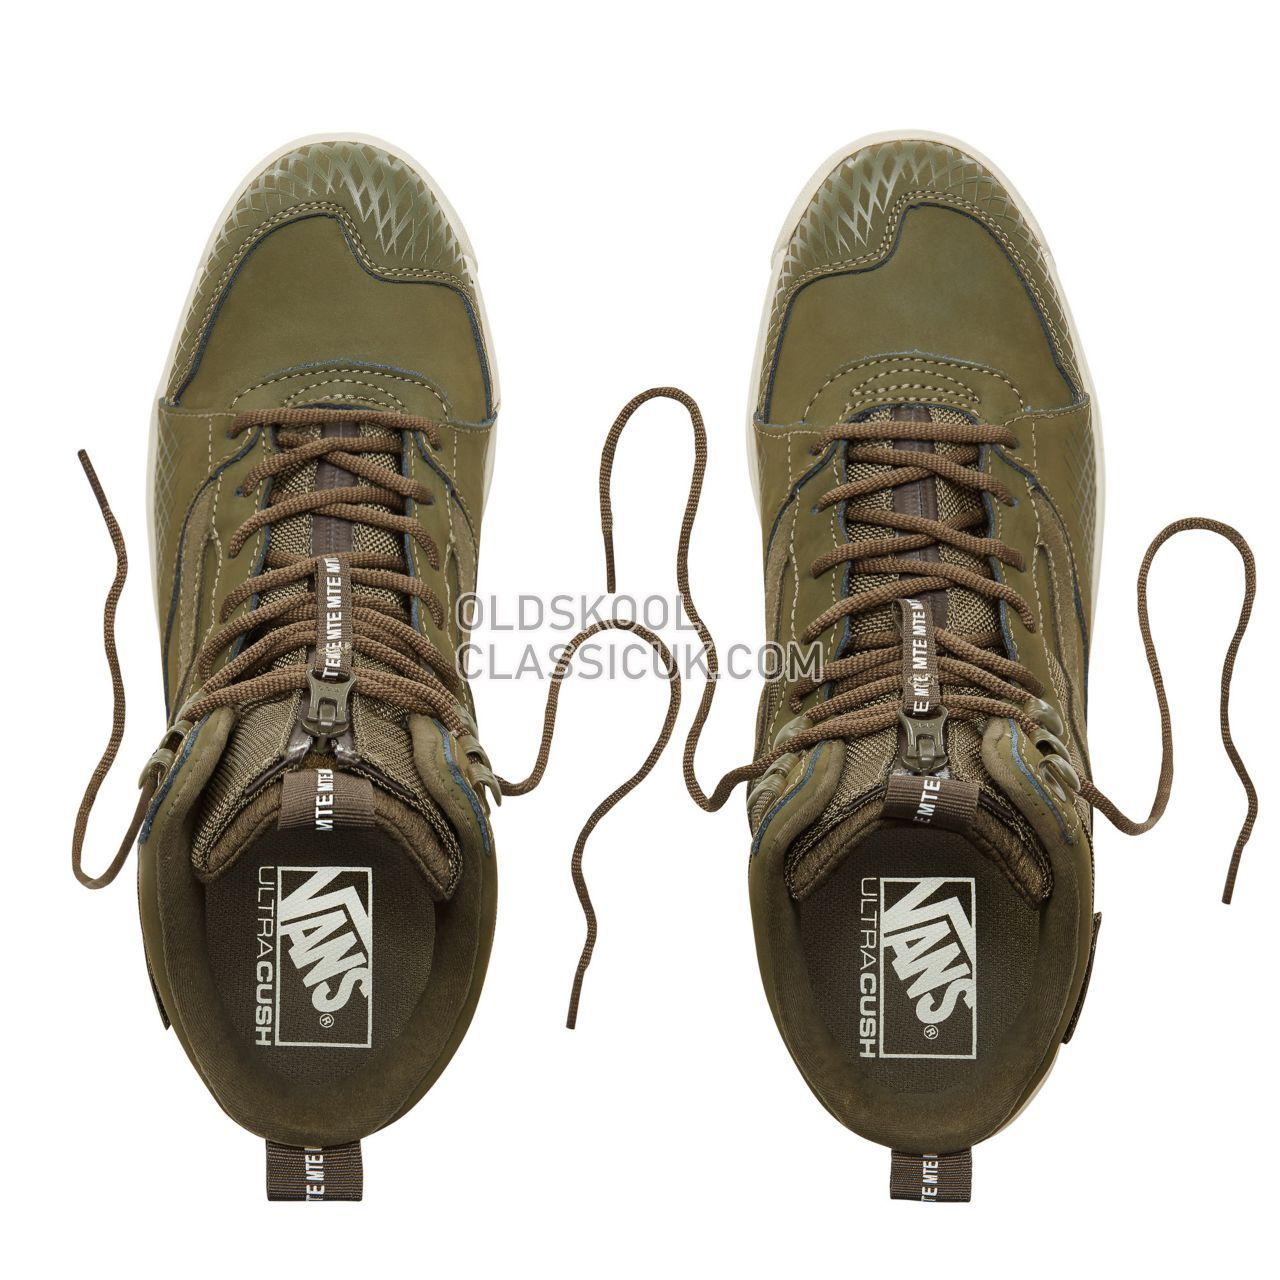 Vans Suede MTE UltraRange Hi Sneakers Mens (Mte) Grape Leaf/Marshmallow VA3TKYUDM Shoes